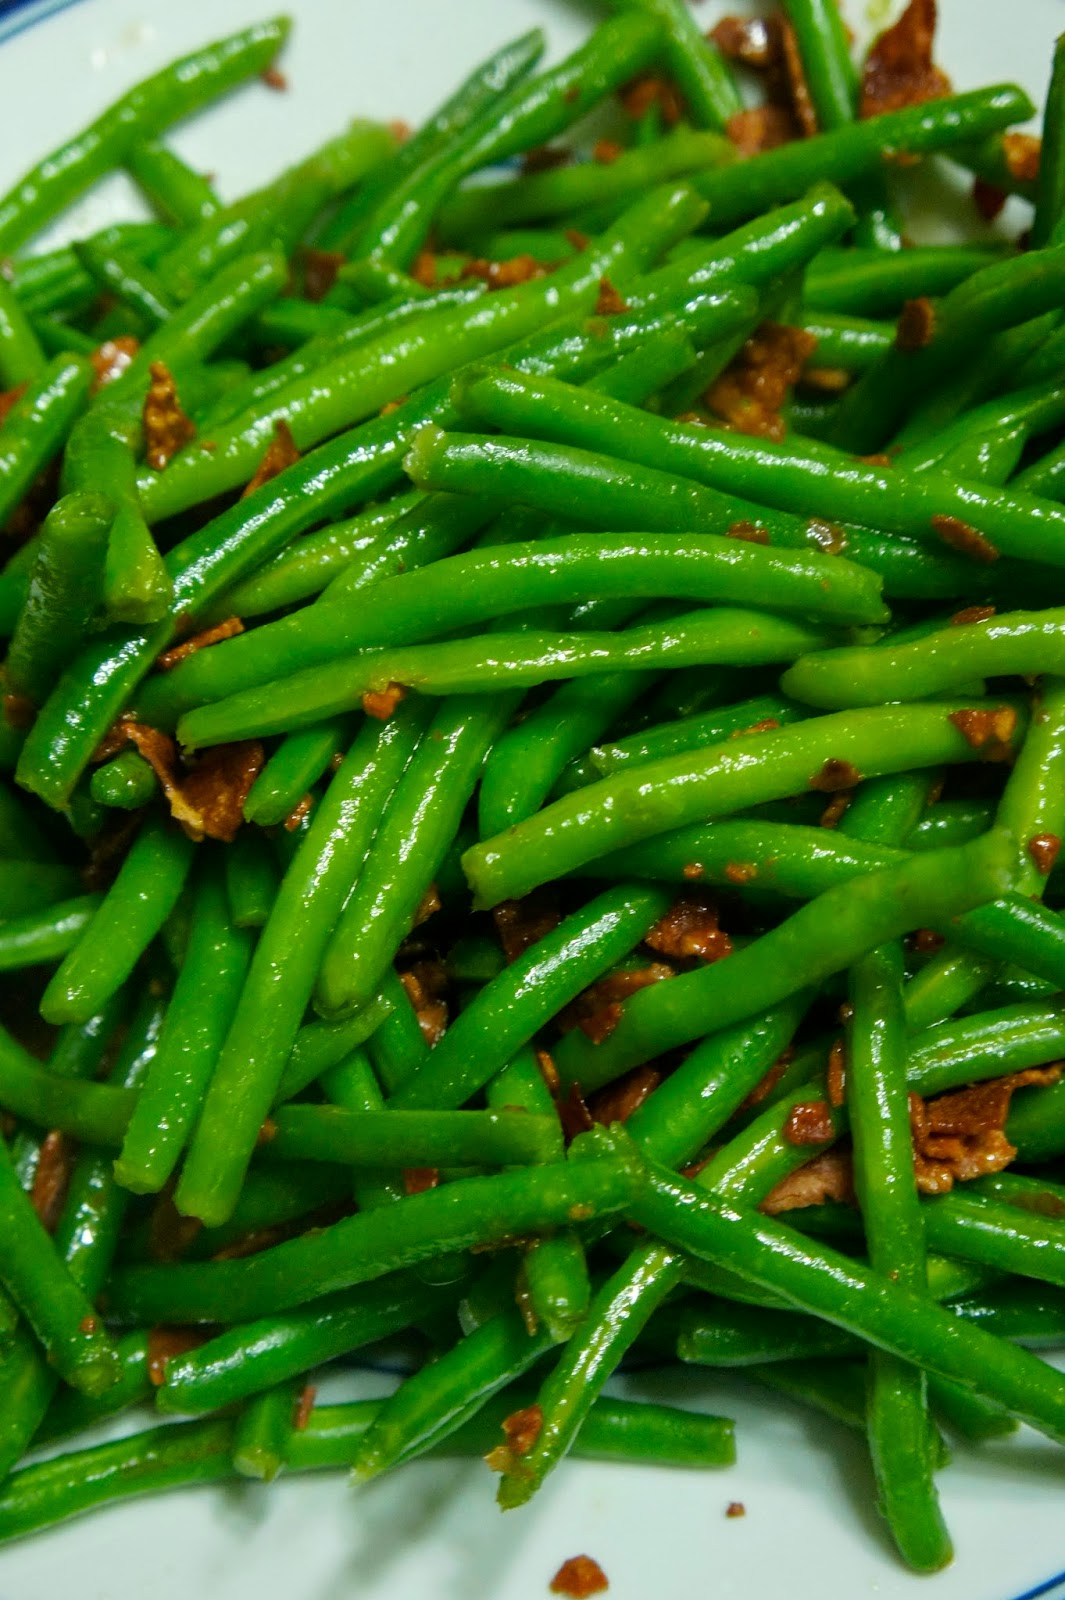 Savory Sweet and Satisfying: Brown Sugar and Bacon Green Beans